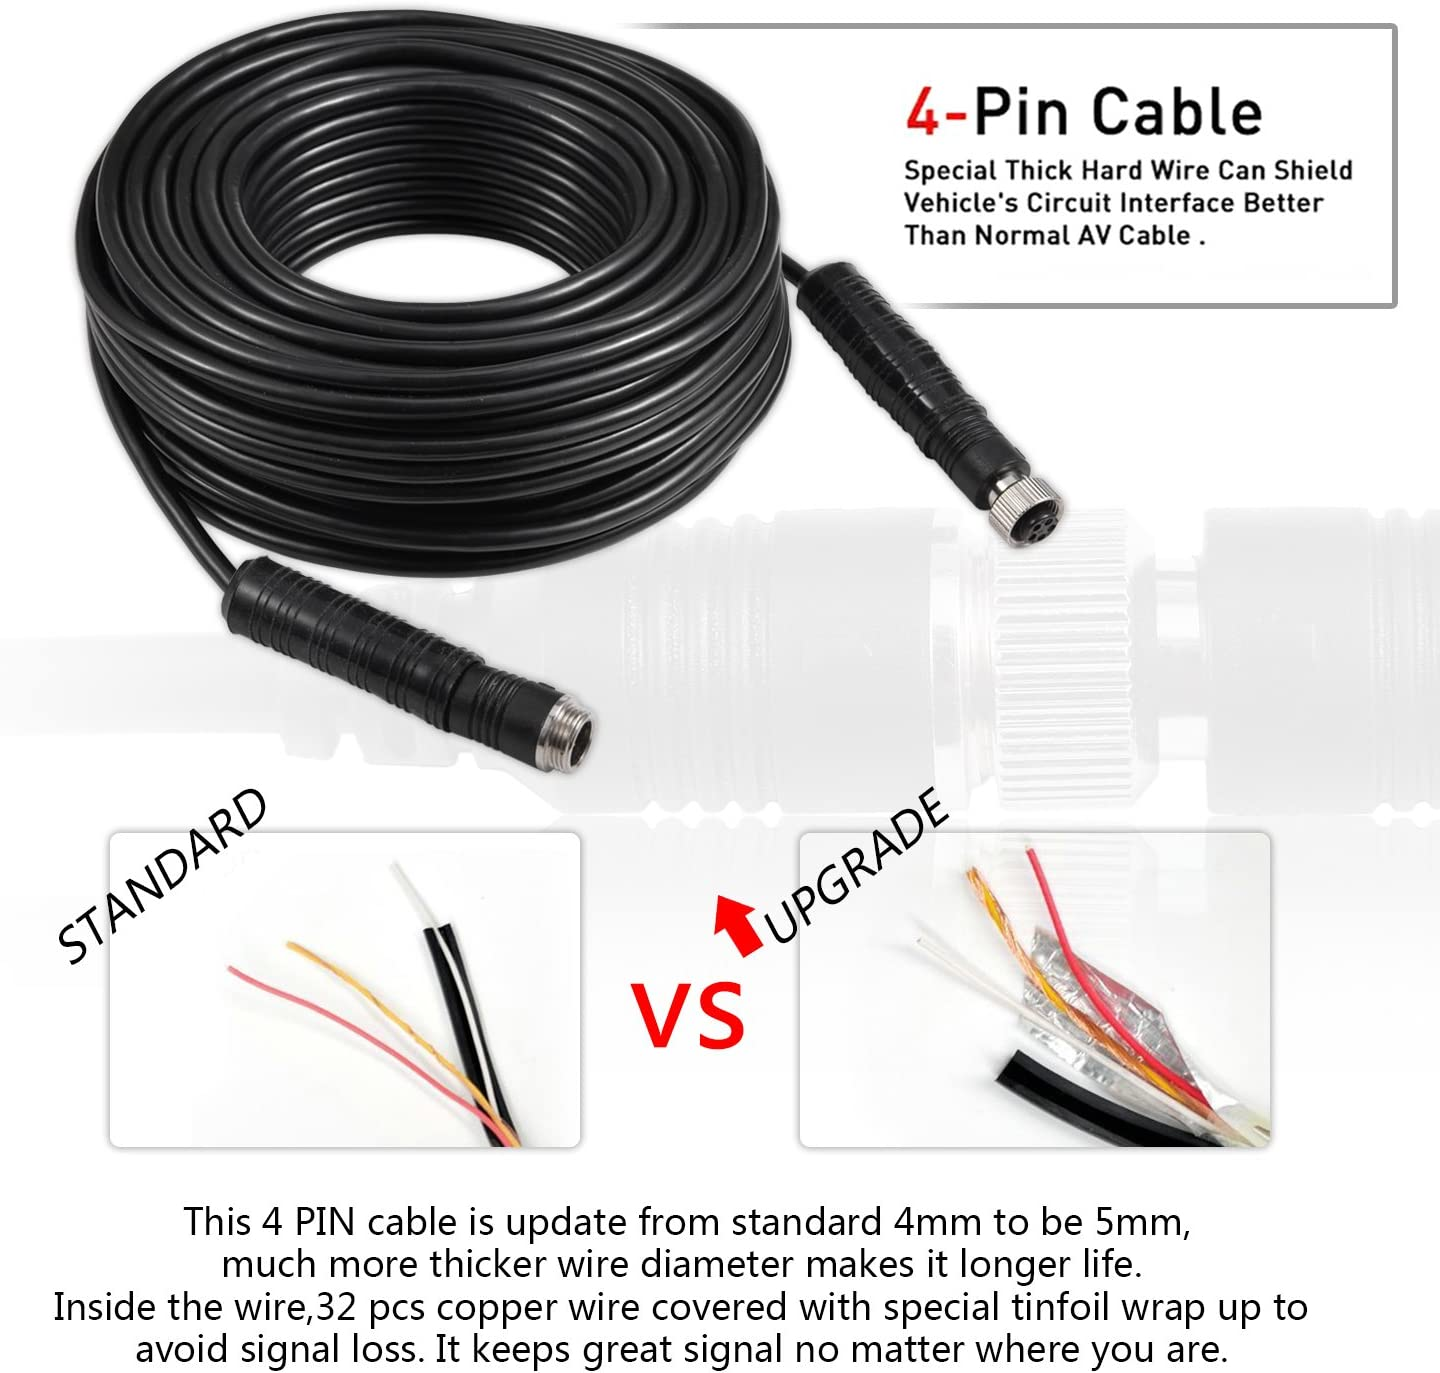 Backup Camera Cable 4PIN Video Power Aviation Extension Wire for Vehicle Car Camper Bus Van Truck Motorhome Trailer RV Reverse Rearview Parking Monitor CCTV System Waterproof Shock Proof 10m 32.8ft